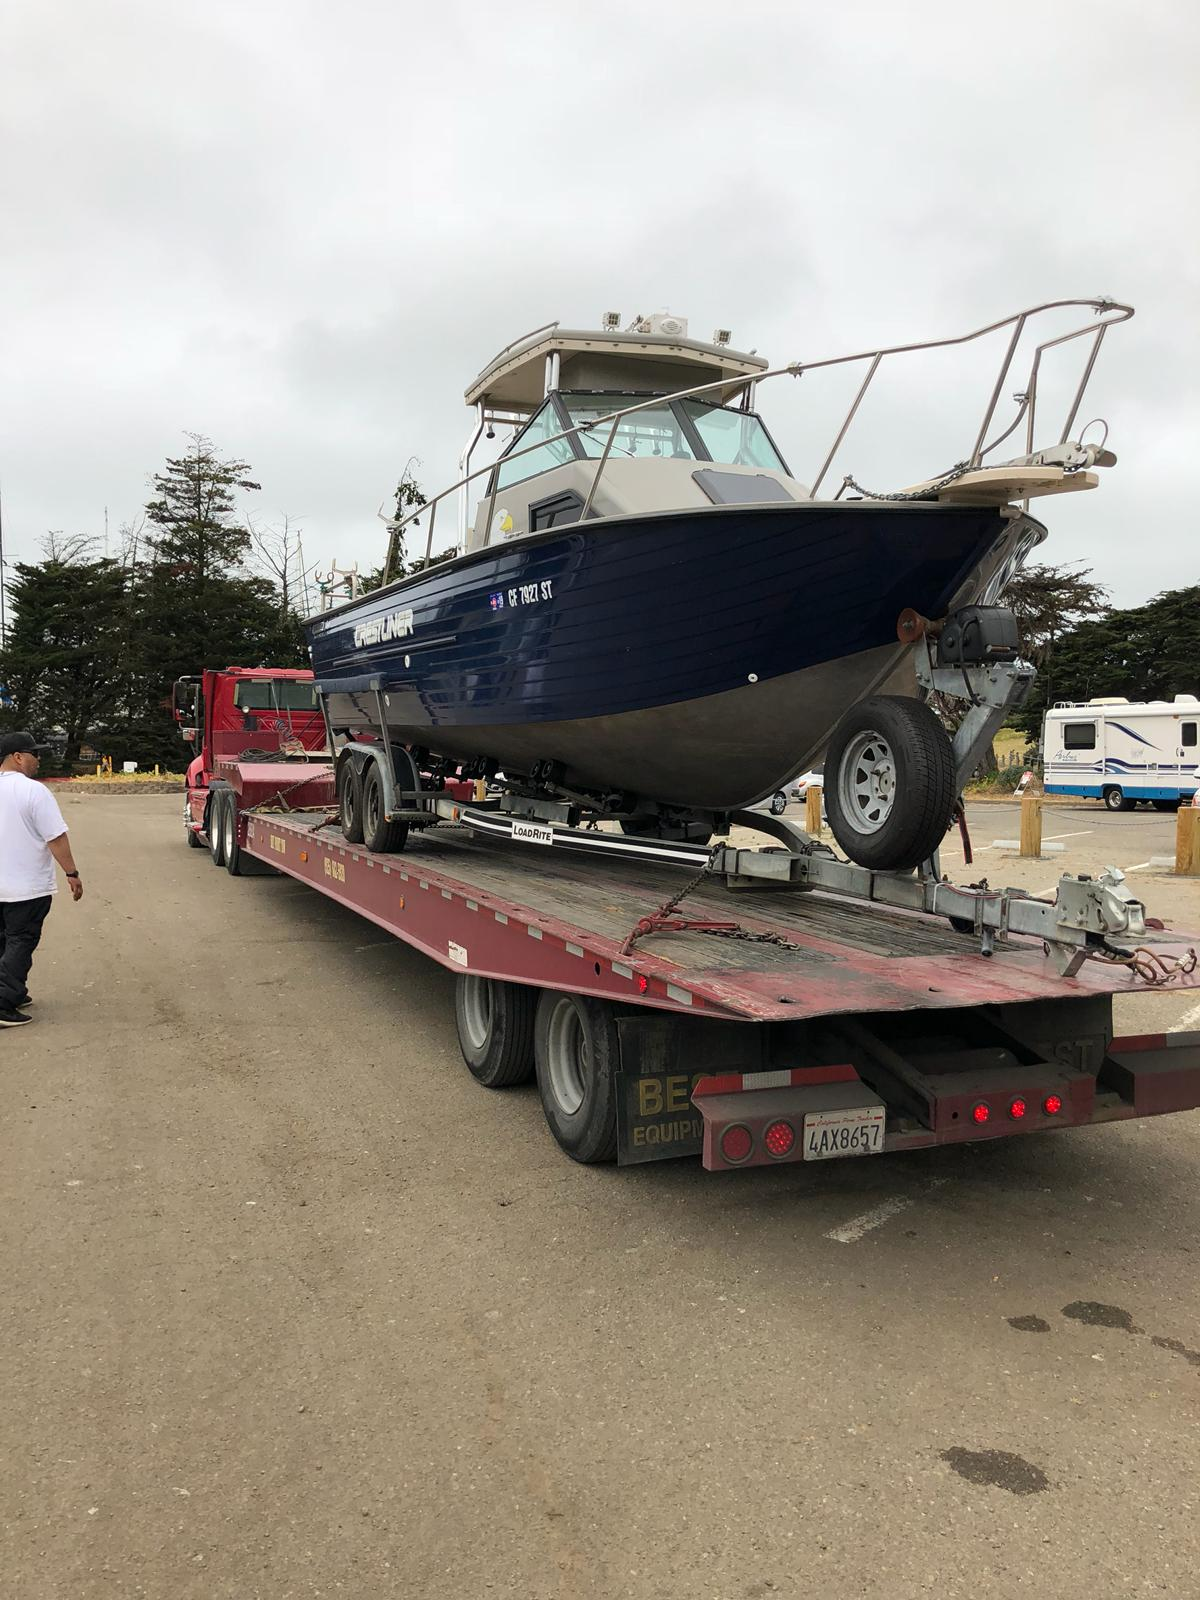 24/7 Boat Towing Services